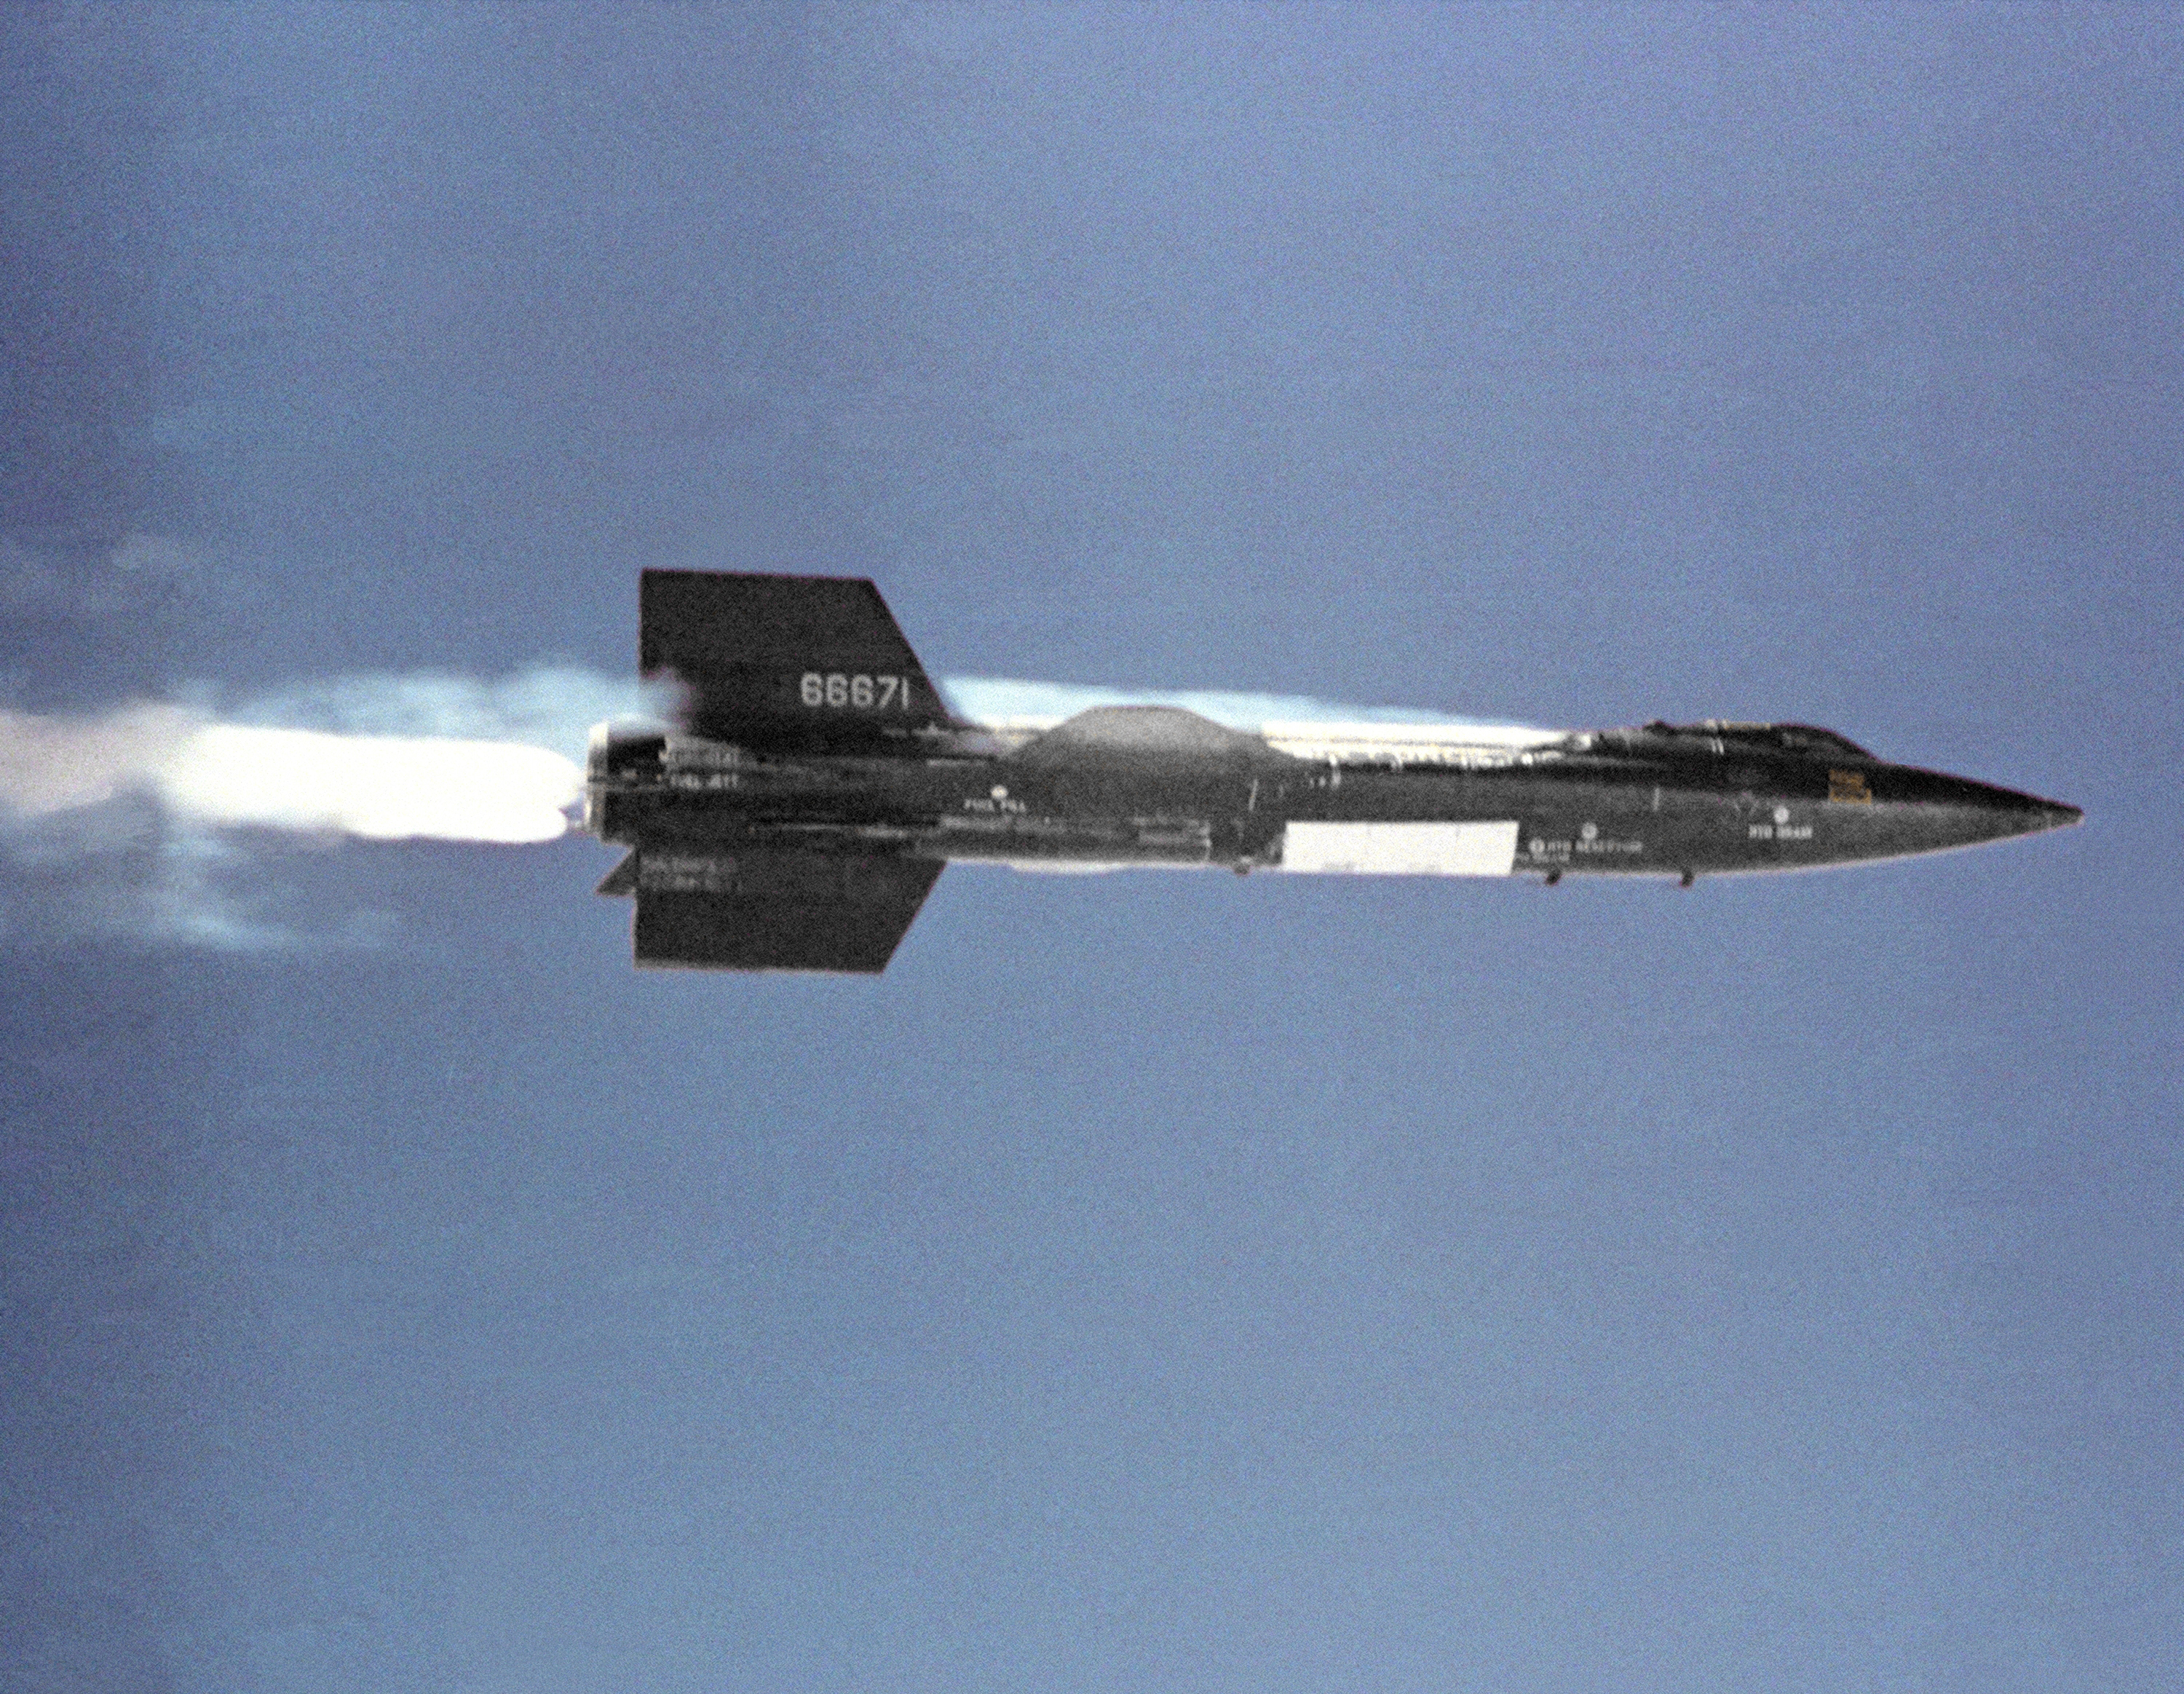 nasa fighter aircraft - photo #36